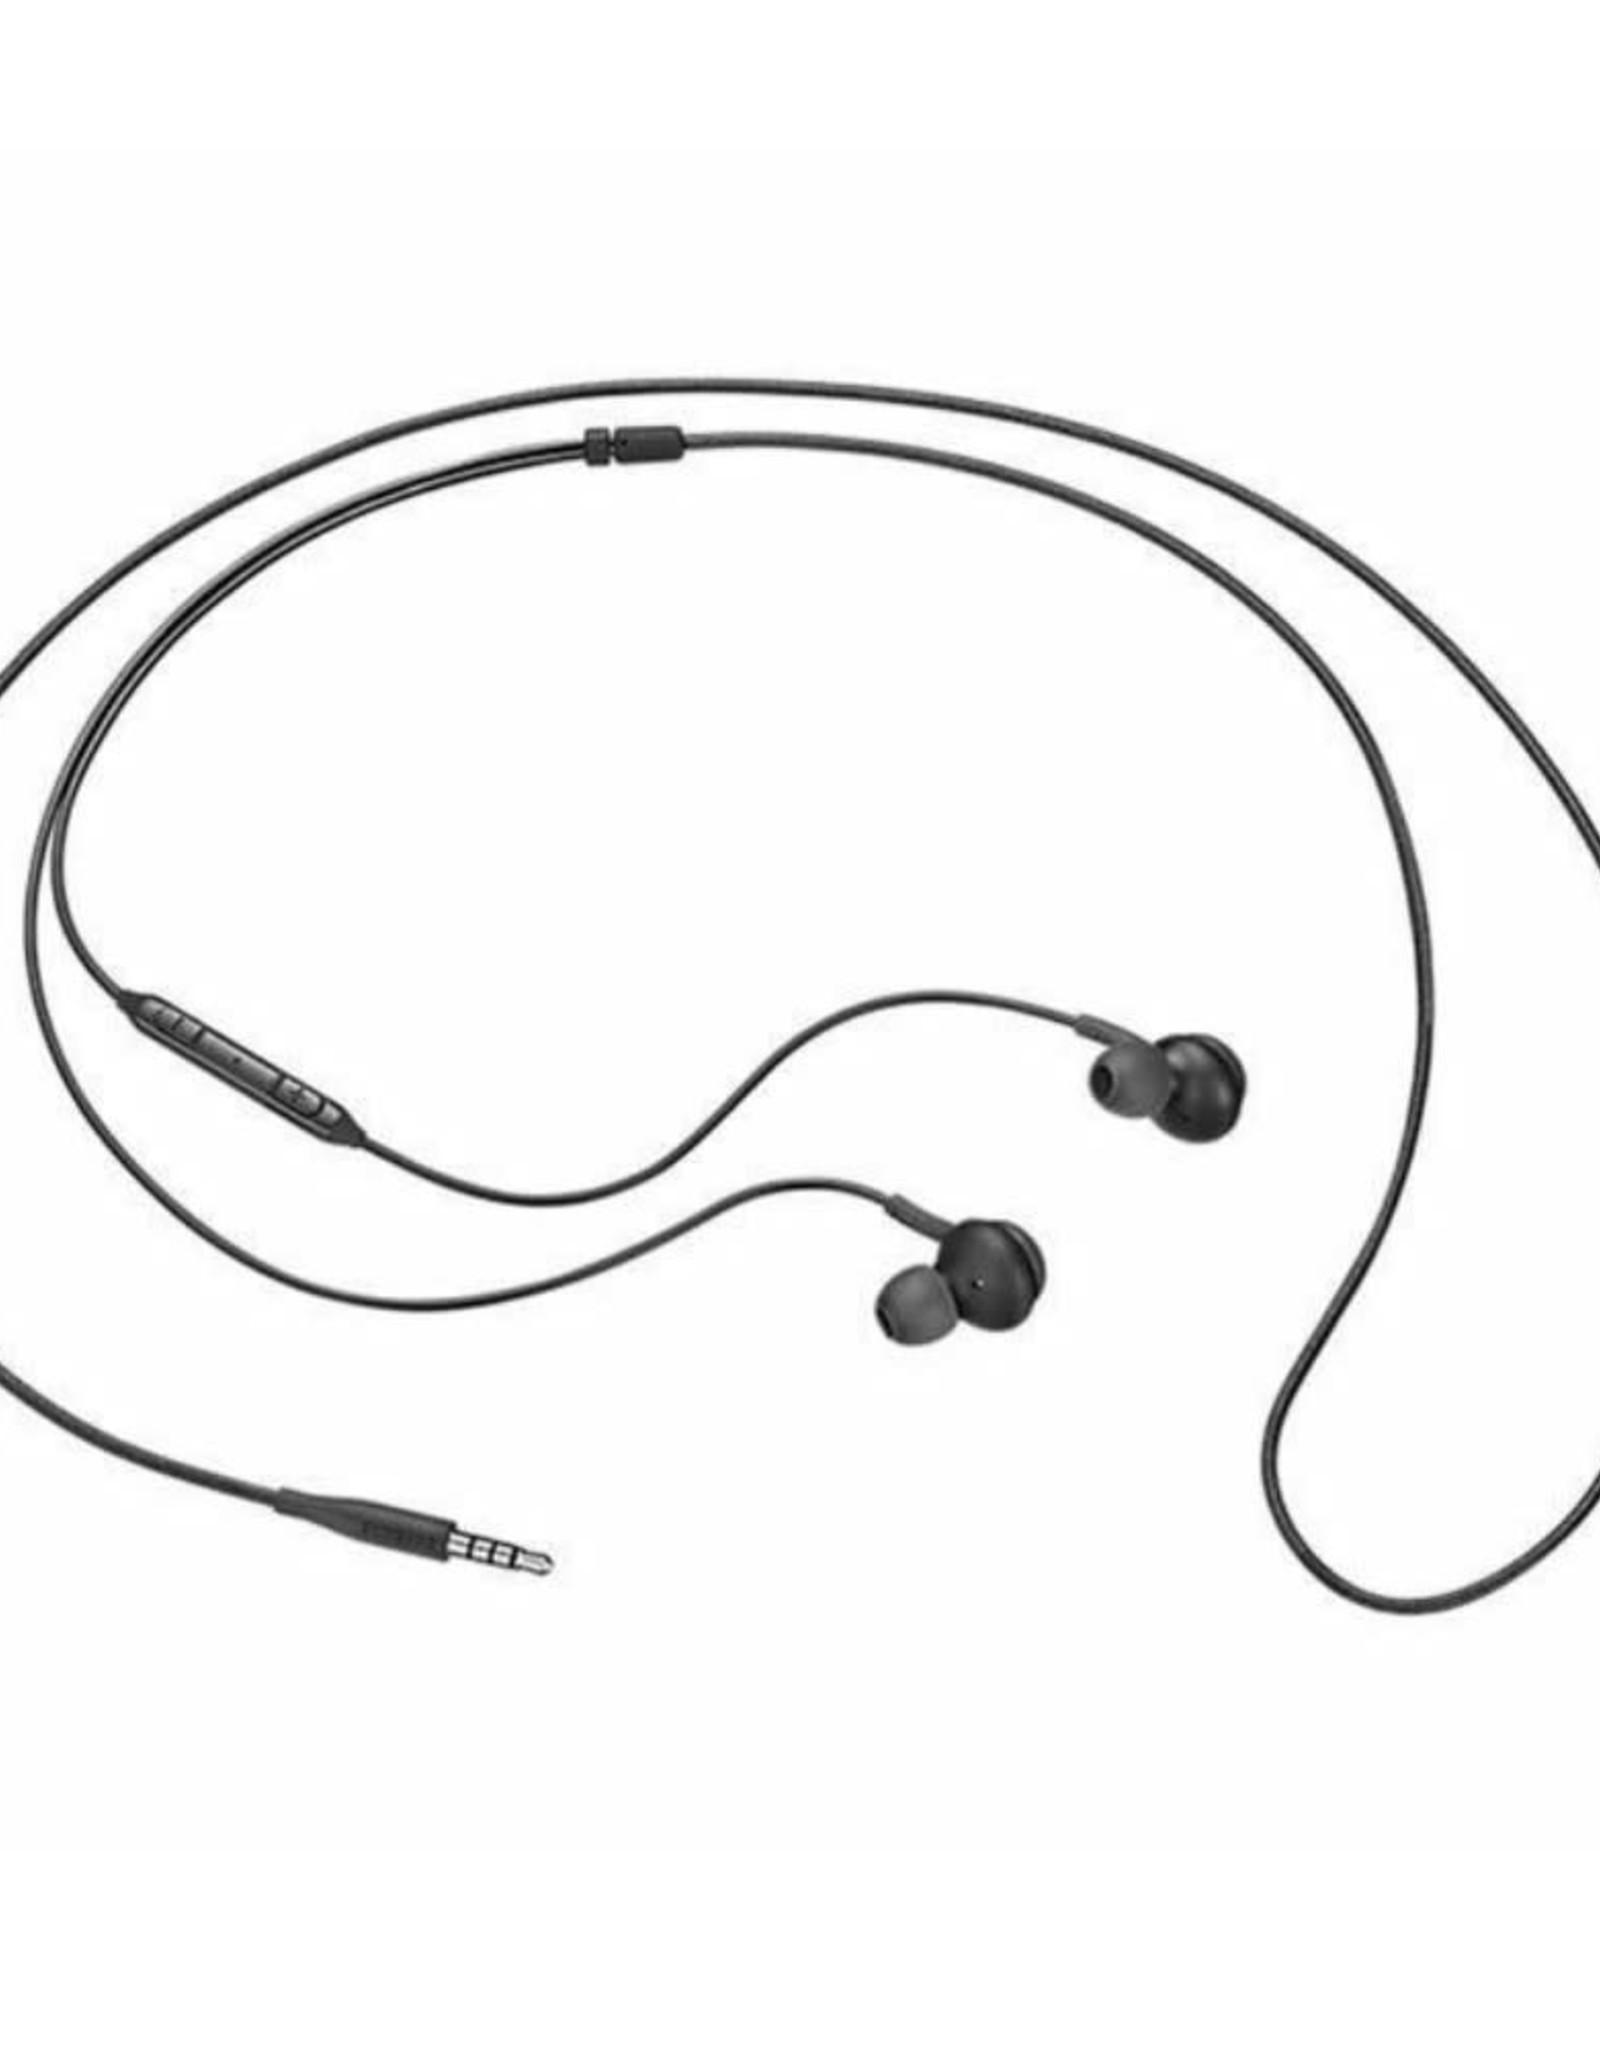 AKG EO-IG955 Stereo Handsfree Earphone Headphone with Mic and Remote Control - Black